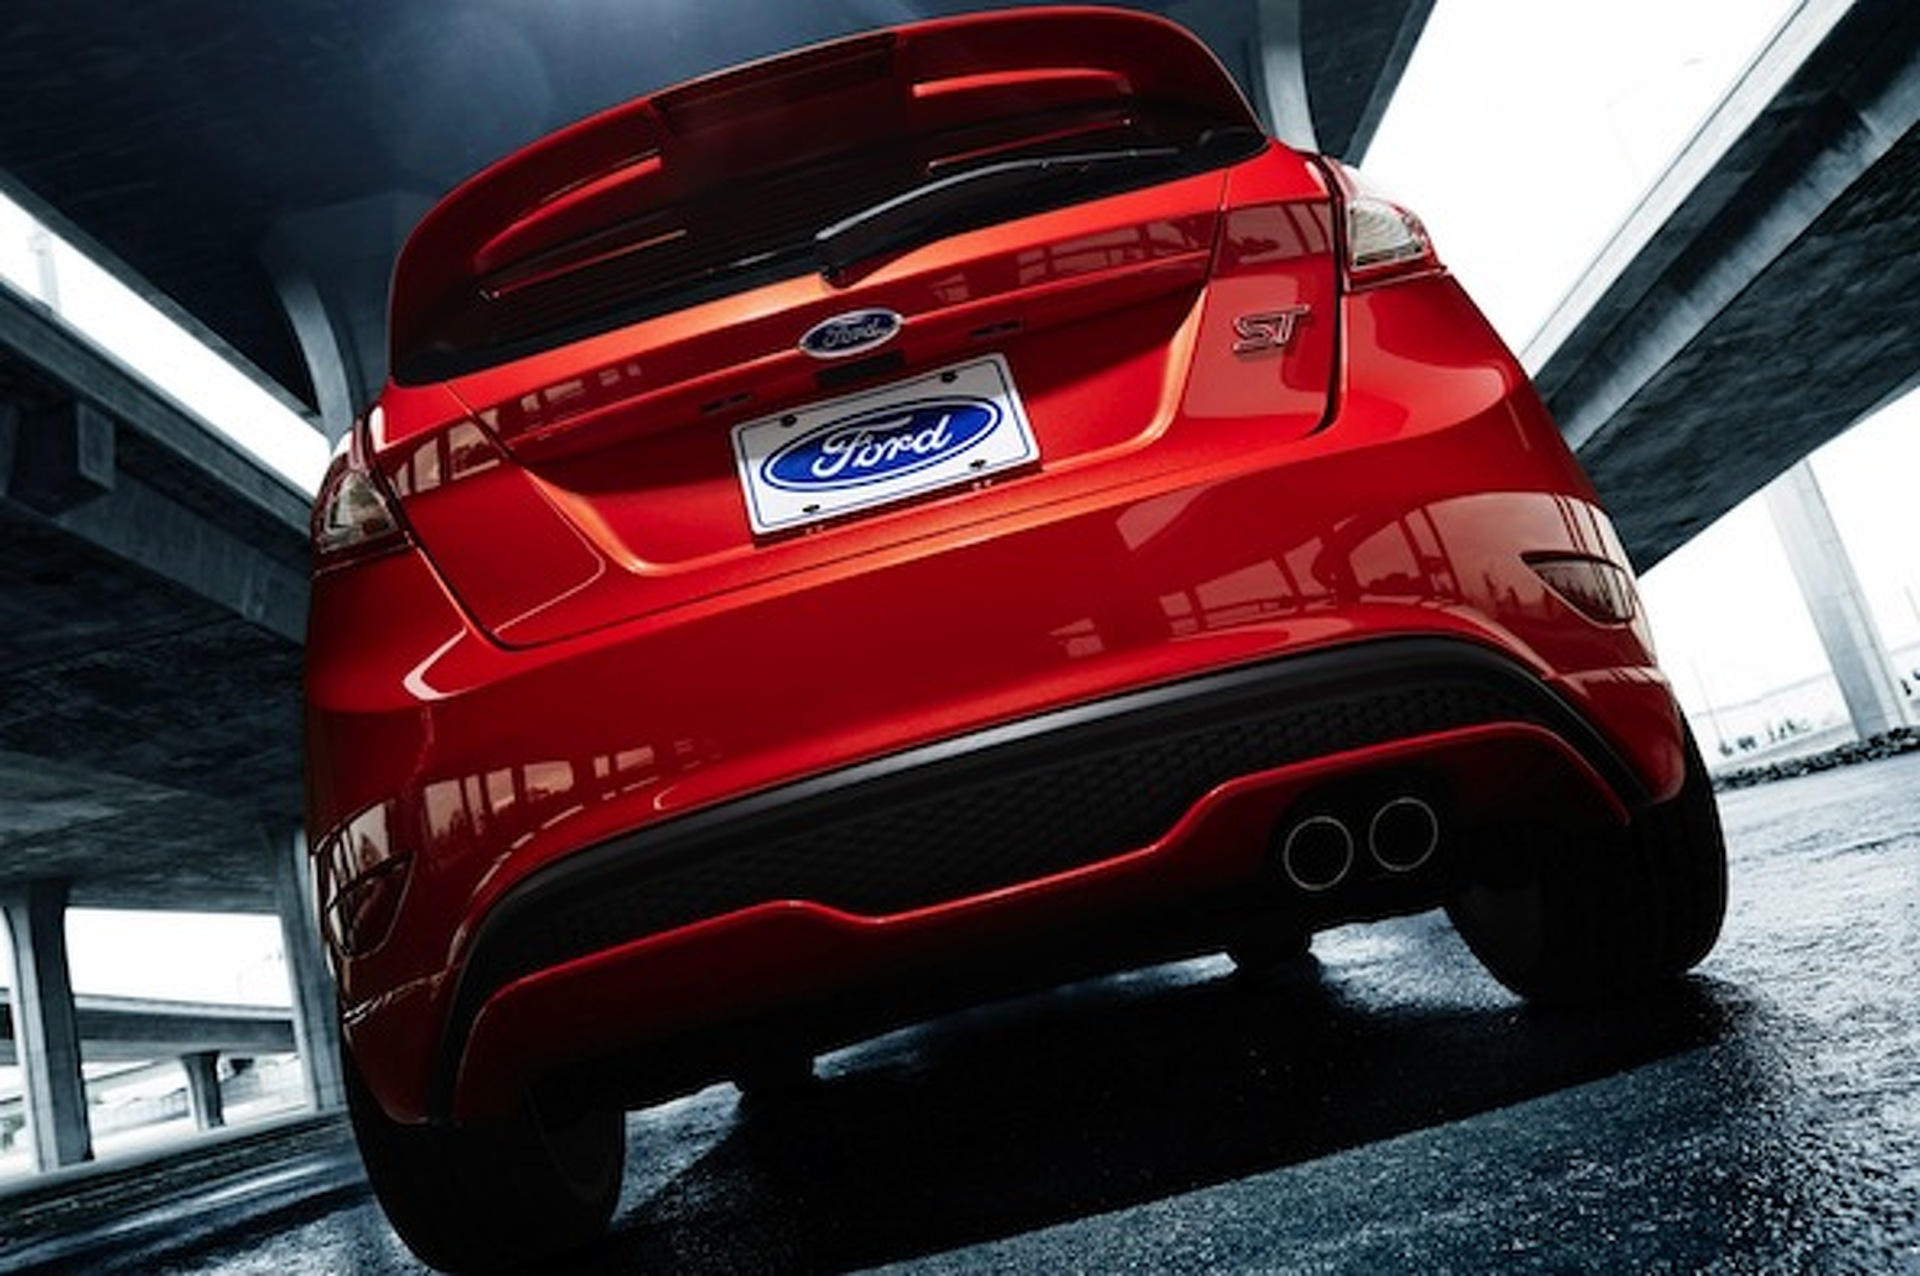 Ford Fiesta ST Priced at $21,400; Best Bang for your Buck?